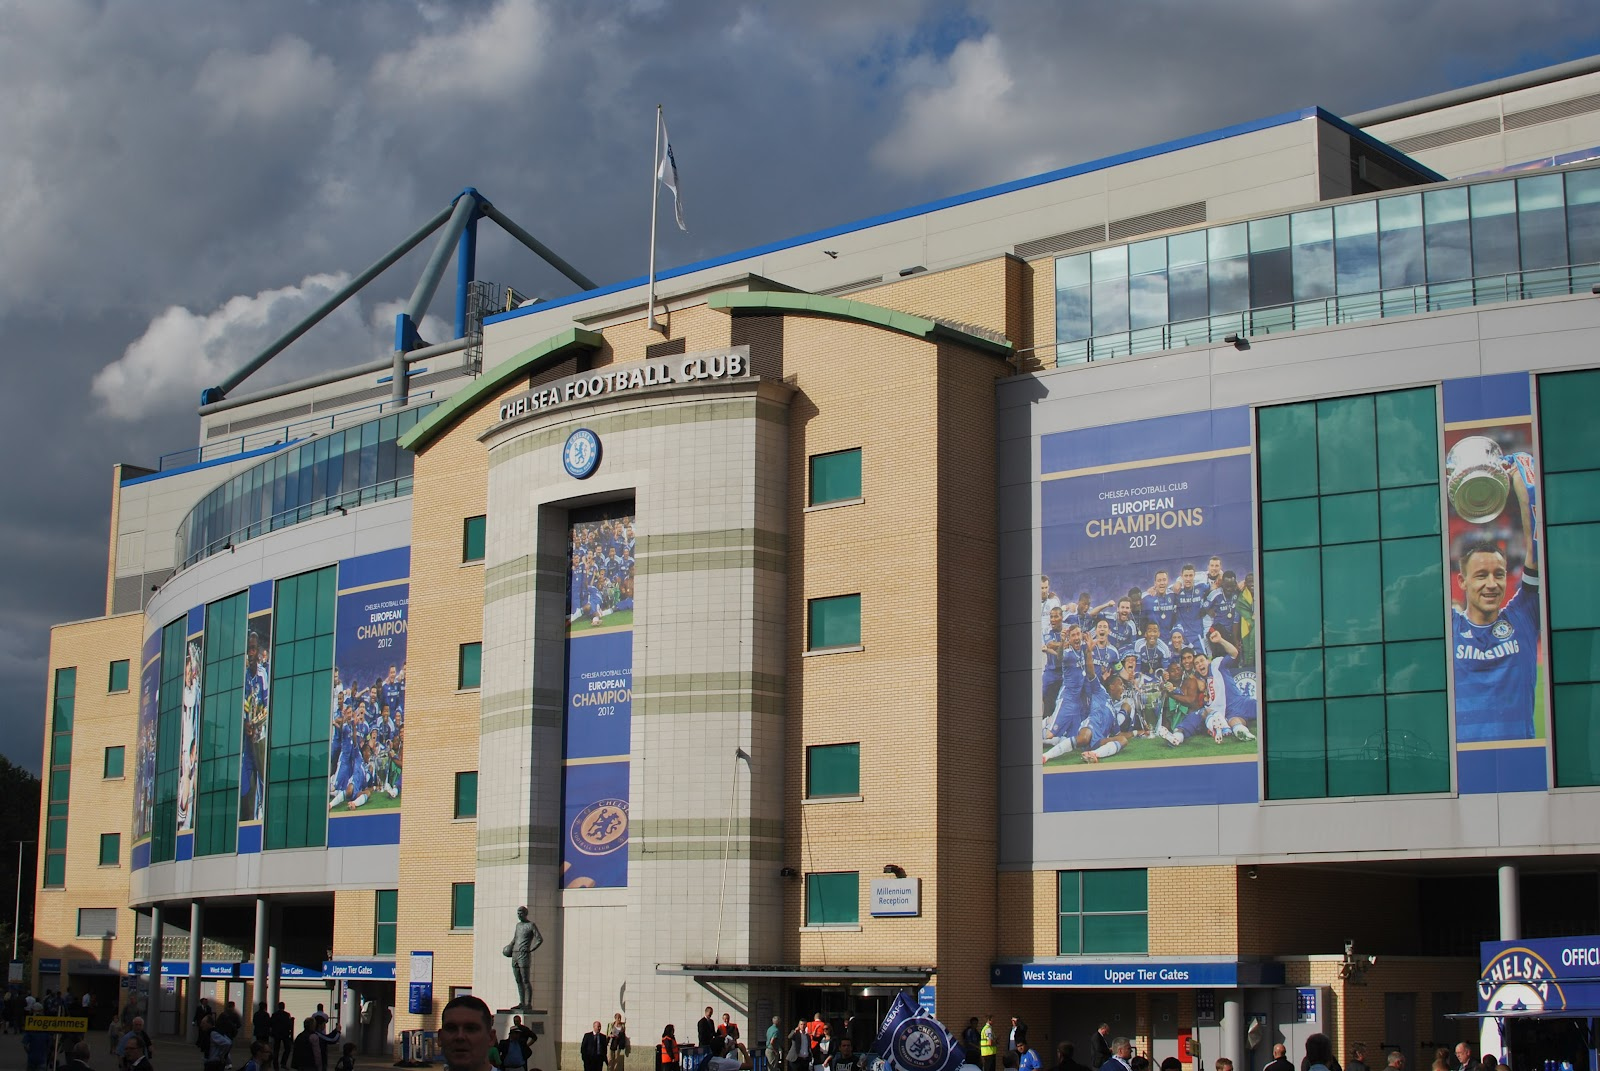 The East Stand entrance at Stamford Bridge